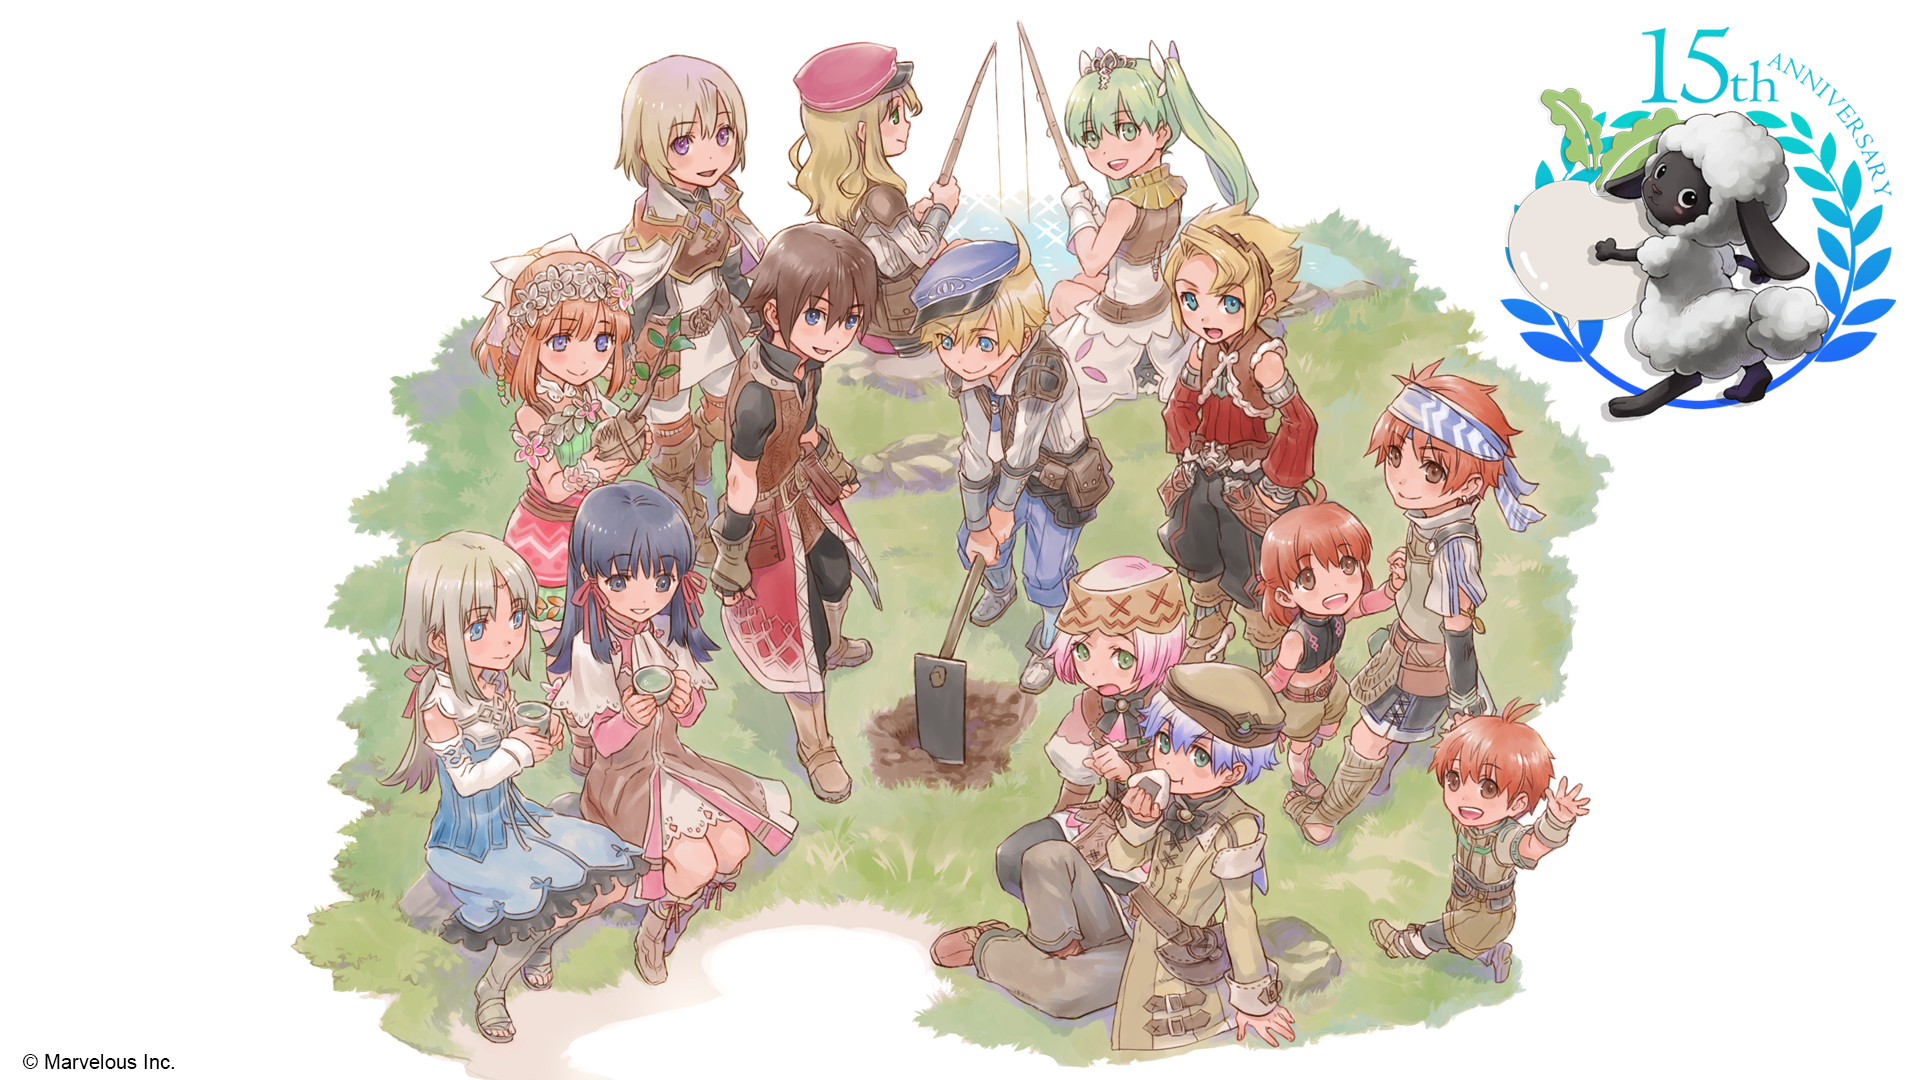 Key art of the Rune Factory characters assembled on a green field with the 15th Anniversary logo in the corner.